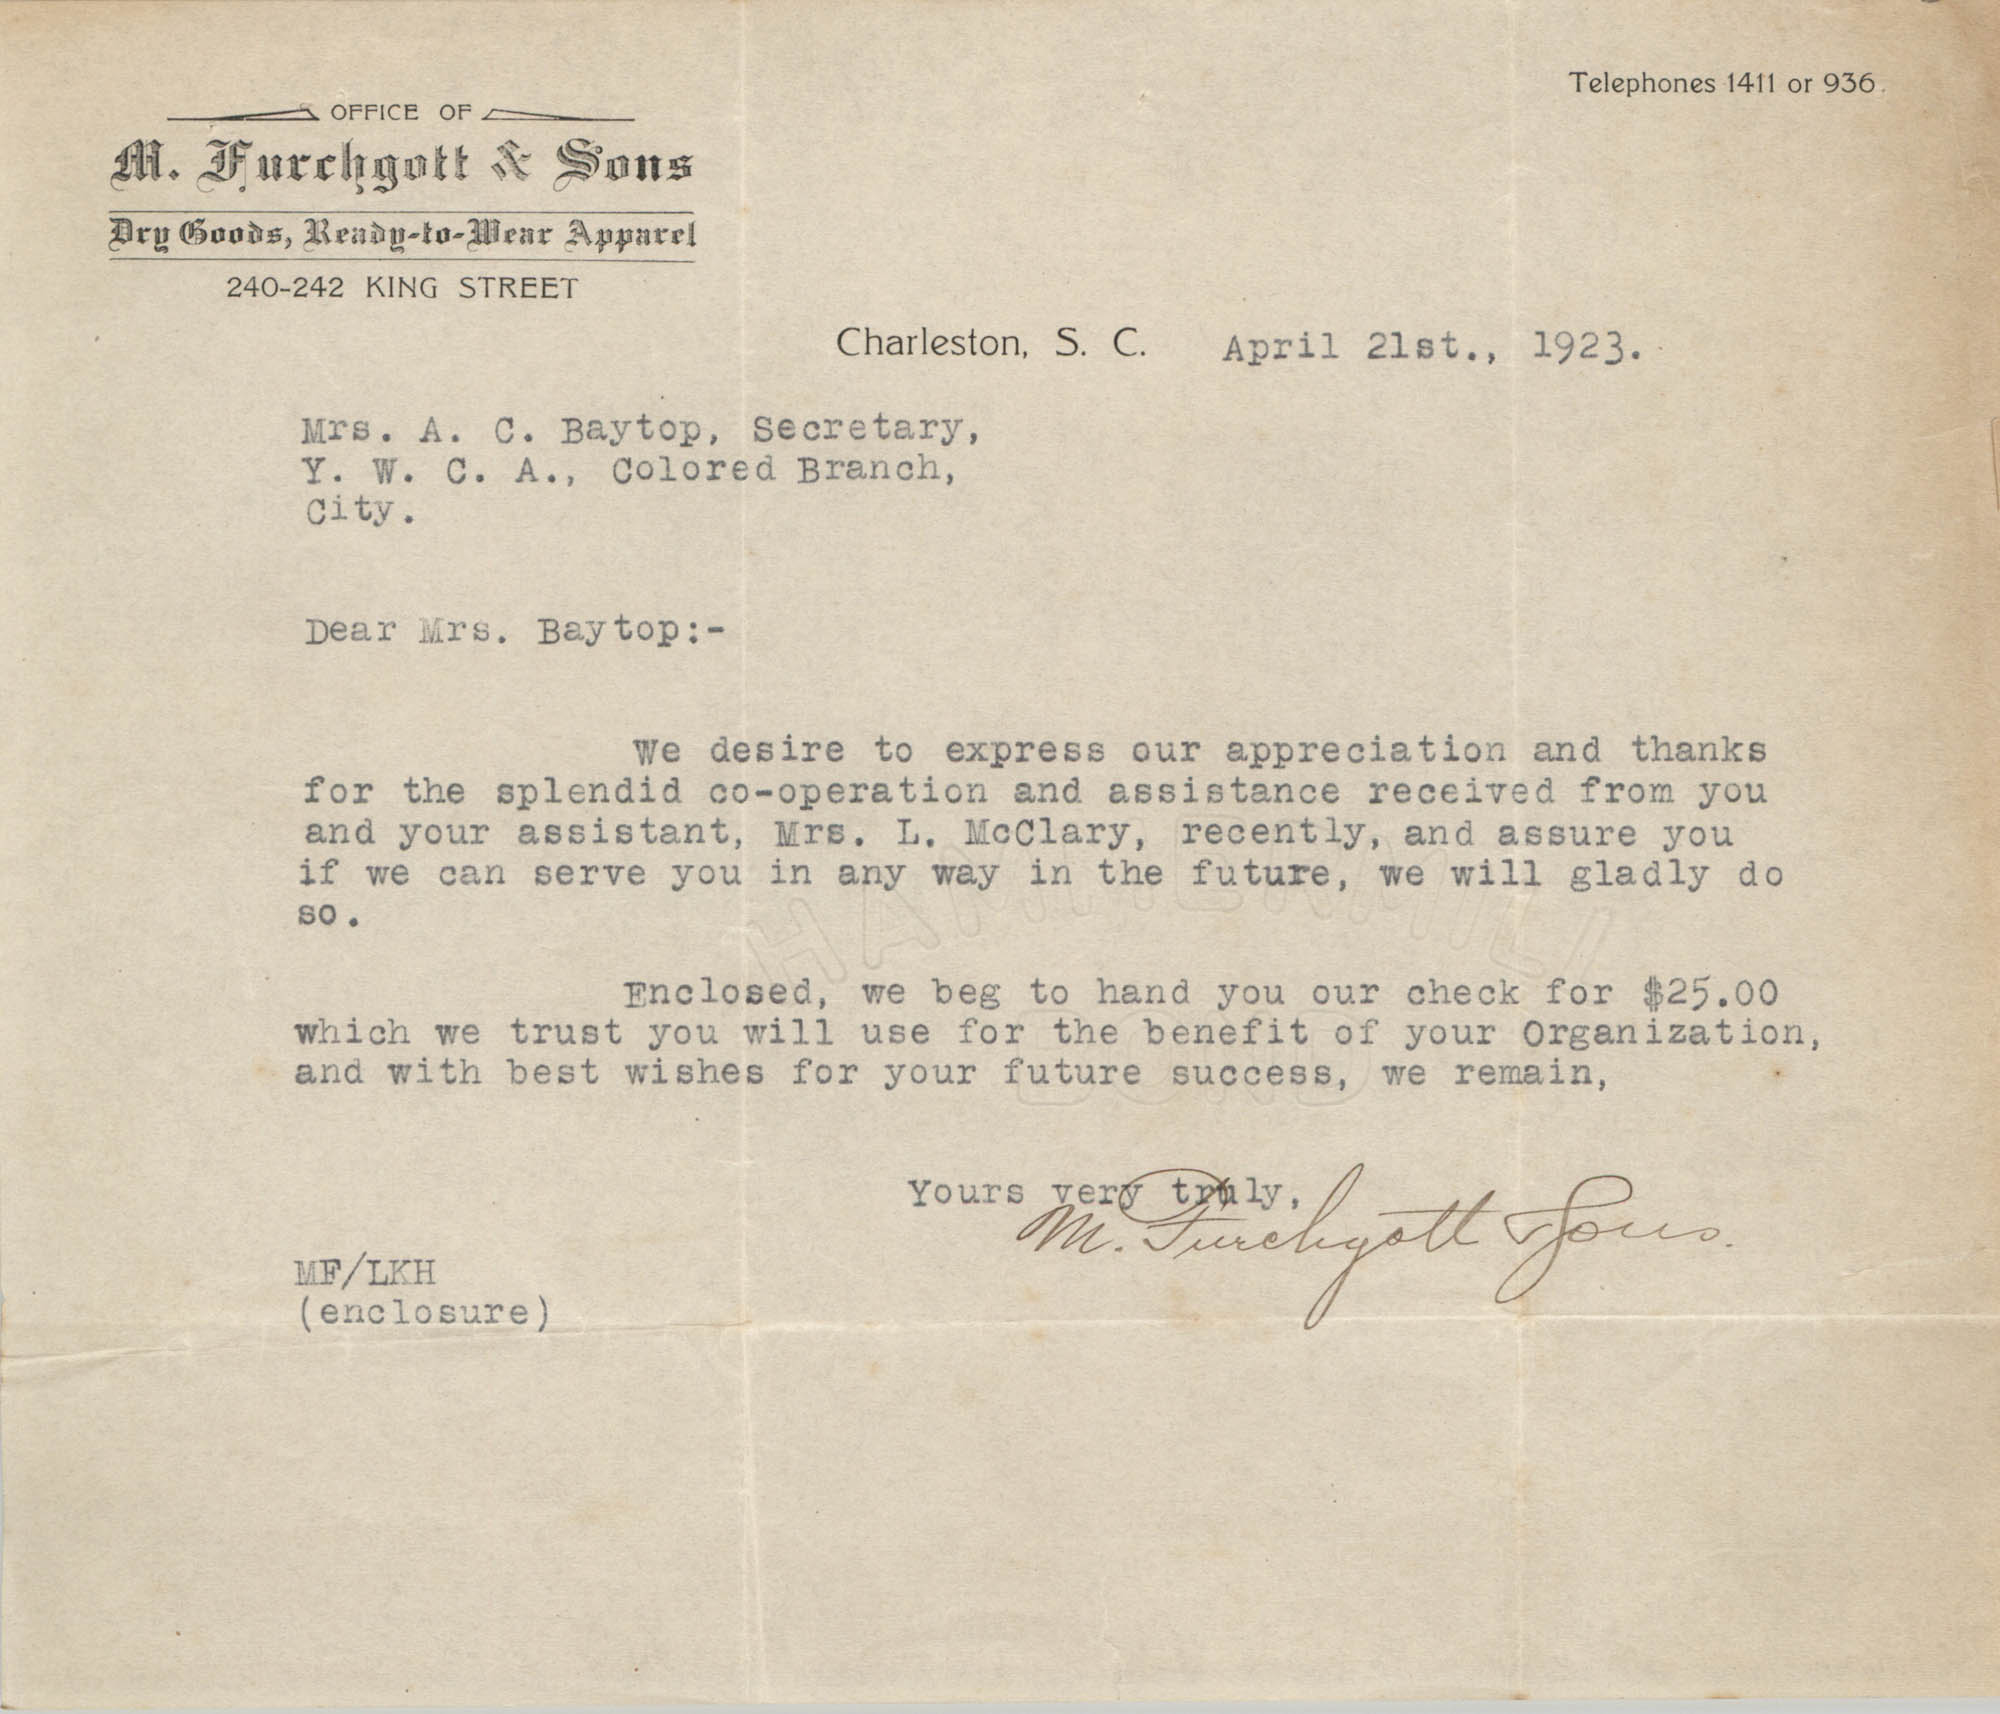 Letter from M. Furchgott and Sons to Ada C. Baytop, April 21, 1923